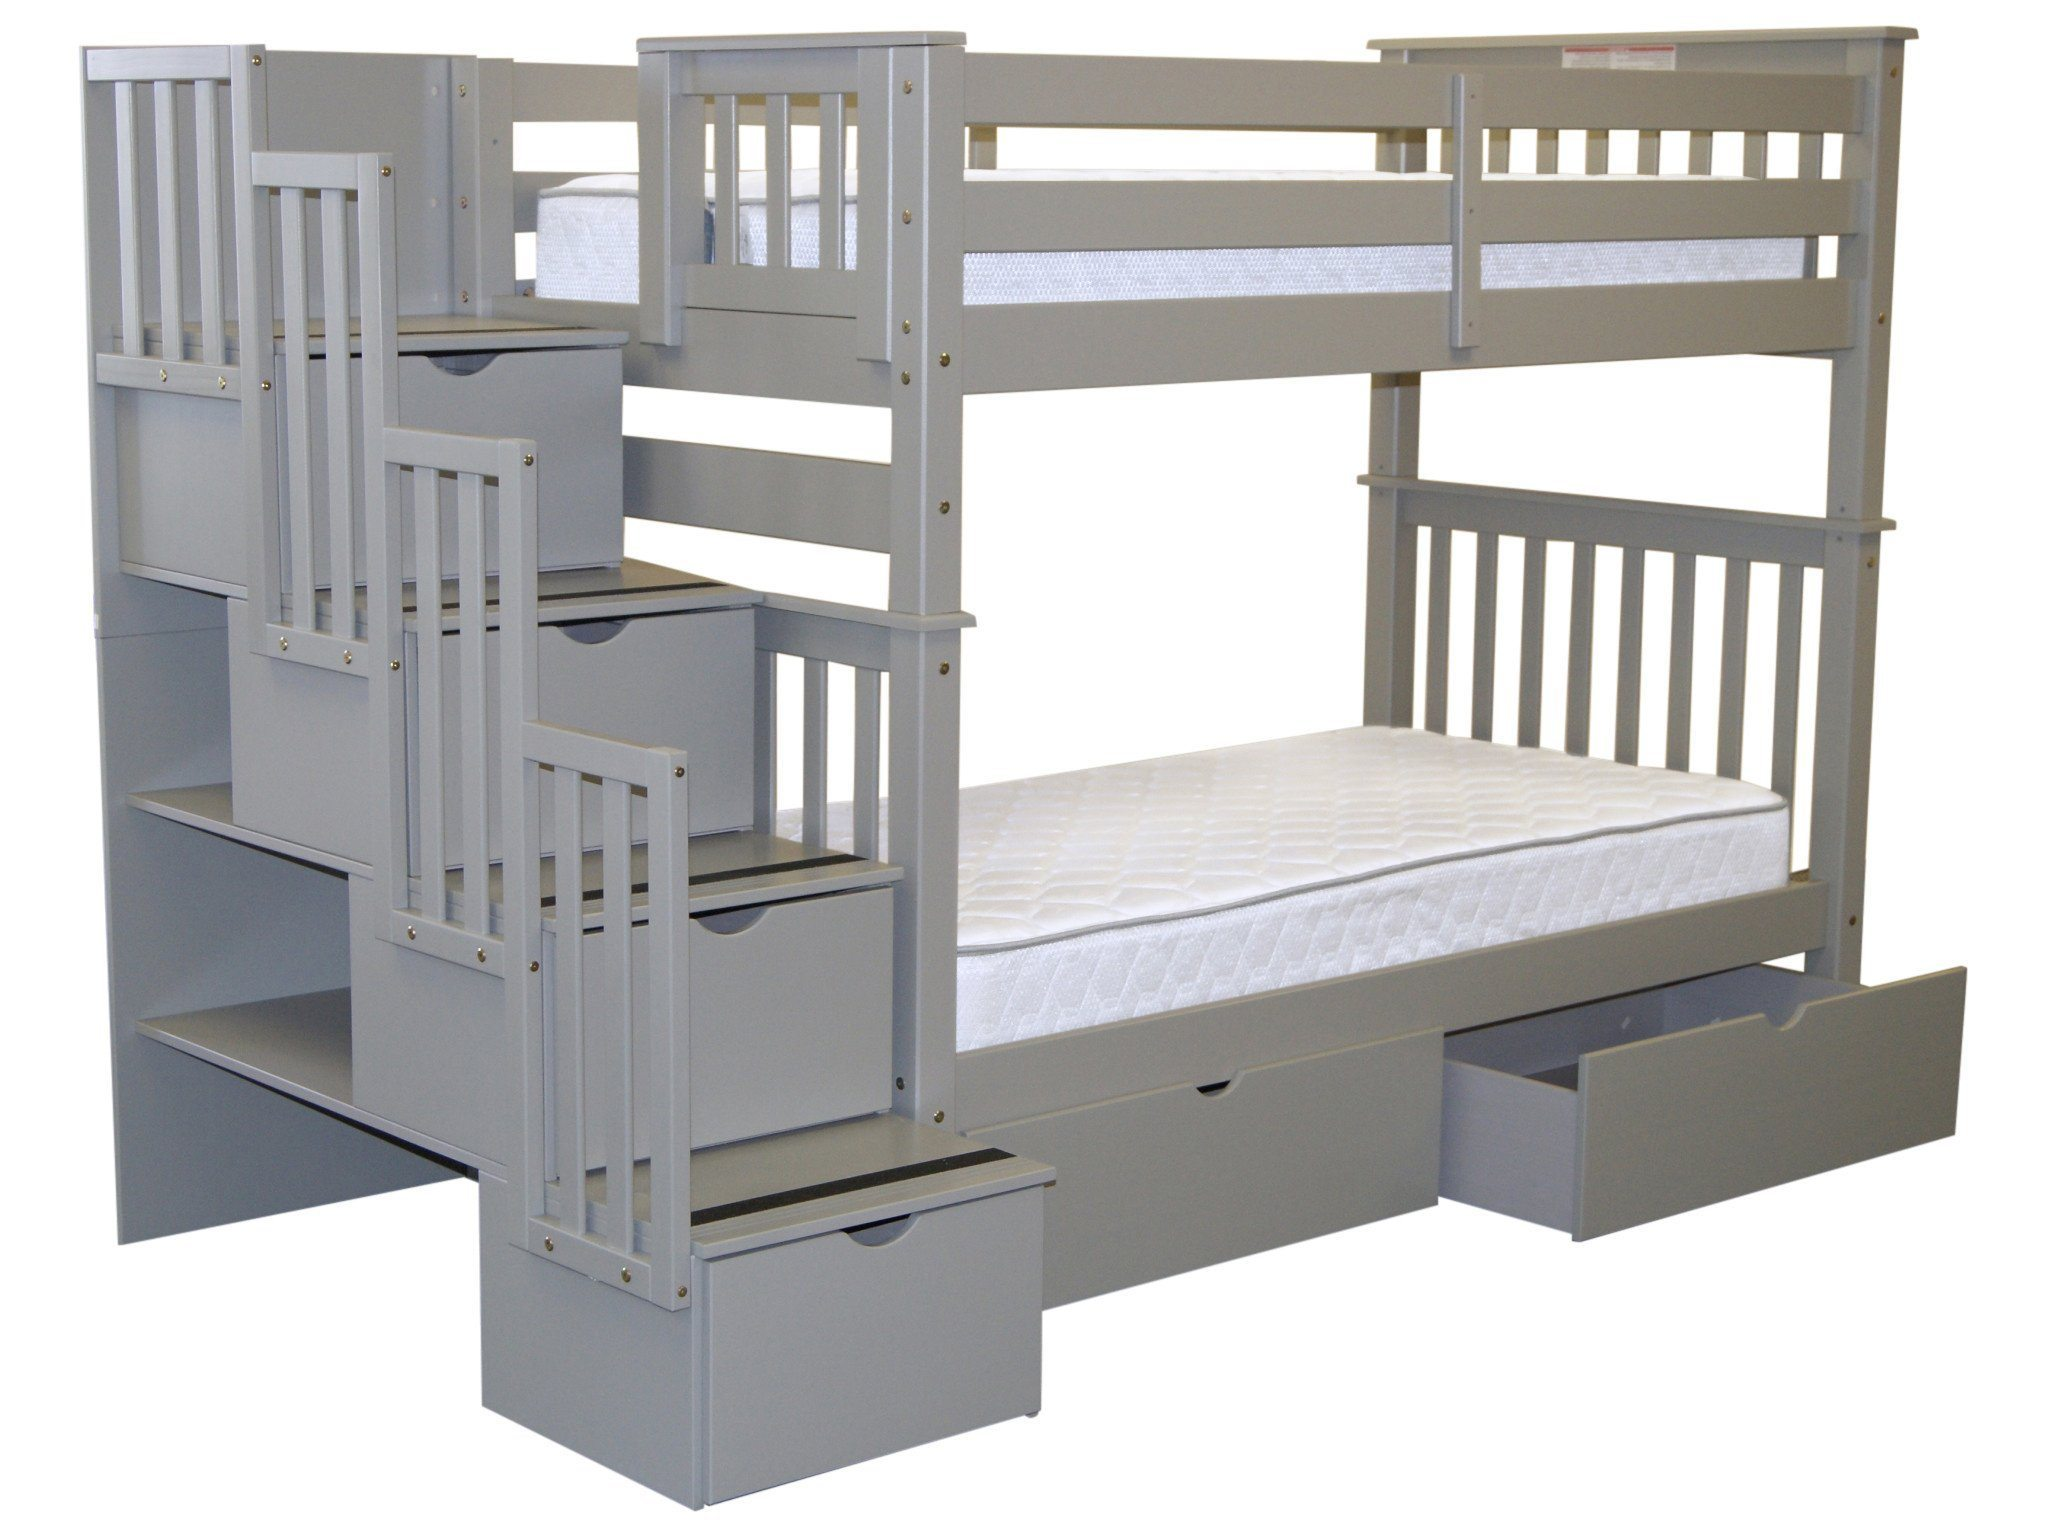 King Single Bed With Drawers Bedz King Tall Stairway Bunk Beds Twin Over Twin With 4 Drawers In The Steps And 2 Under Bed Drawers Gray